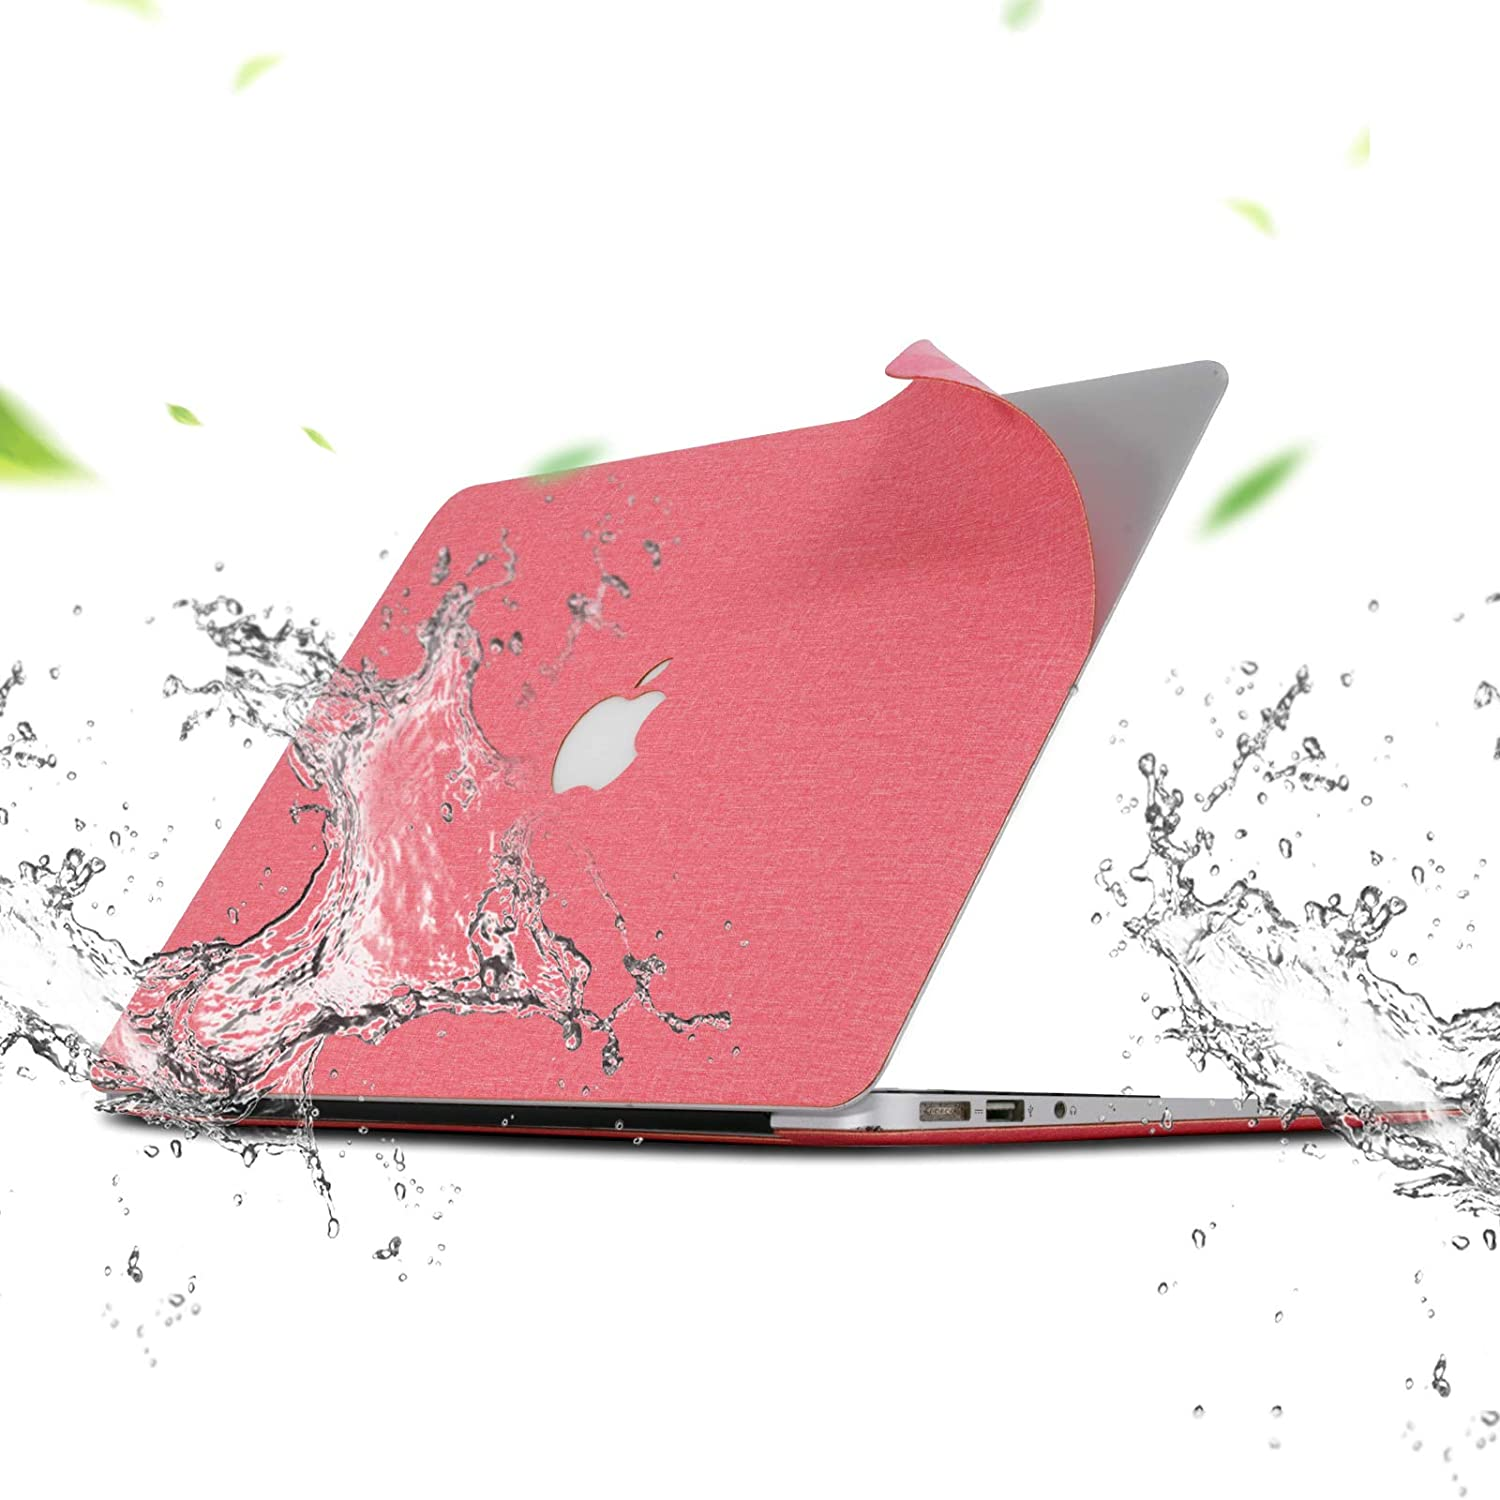 Magstone Pink Cloth Composite Material Laptop Protect Cover Skin Stickers MacBook Pro Decal Logo Sticks MacBook air 13 inch Case for MacBook Air Laptop A2179 A1932 A1706,A1989, A2159, A2551, A2289